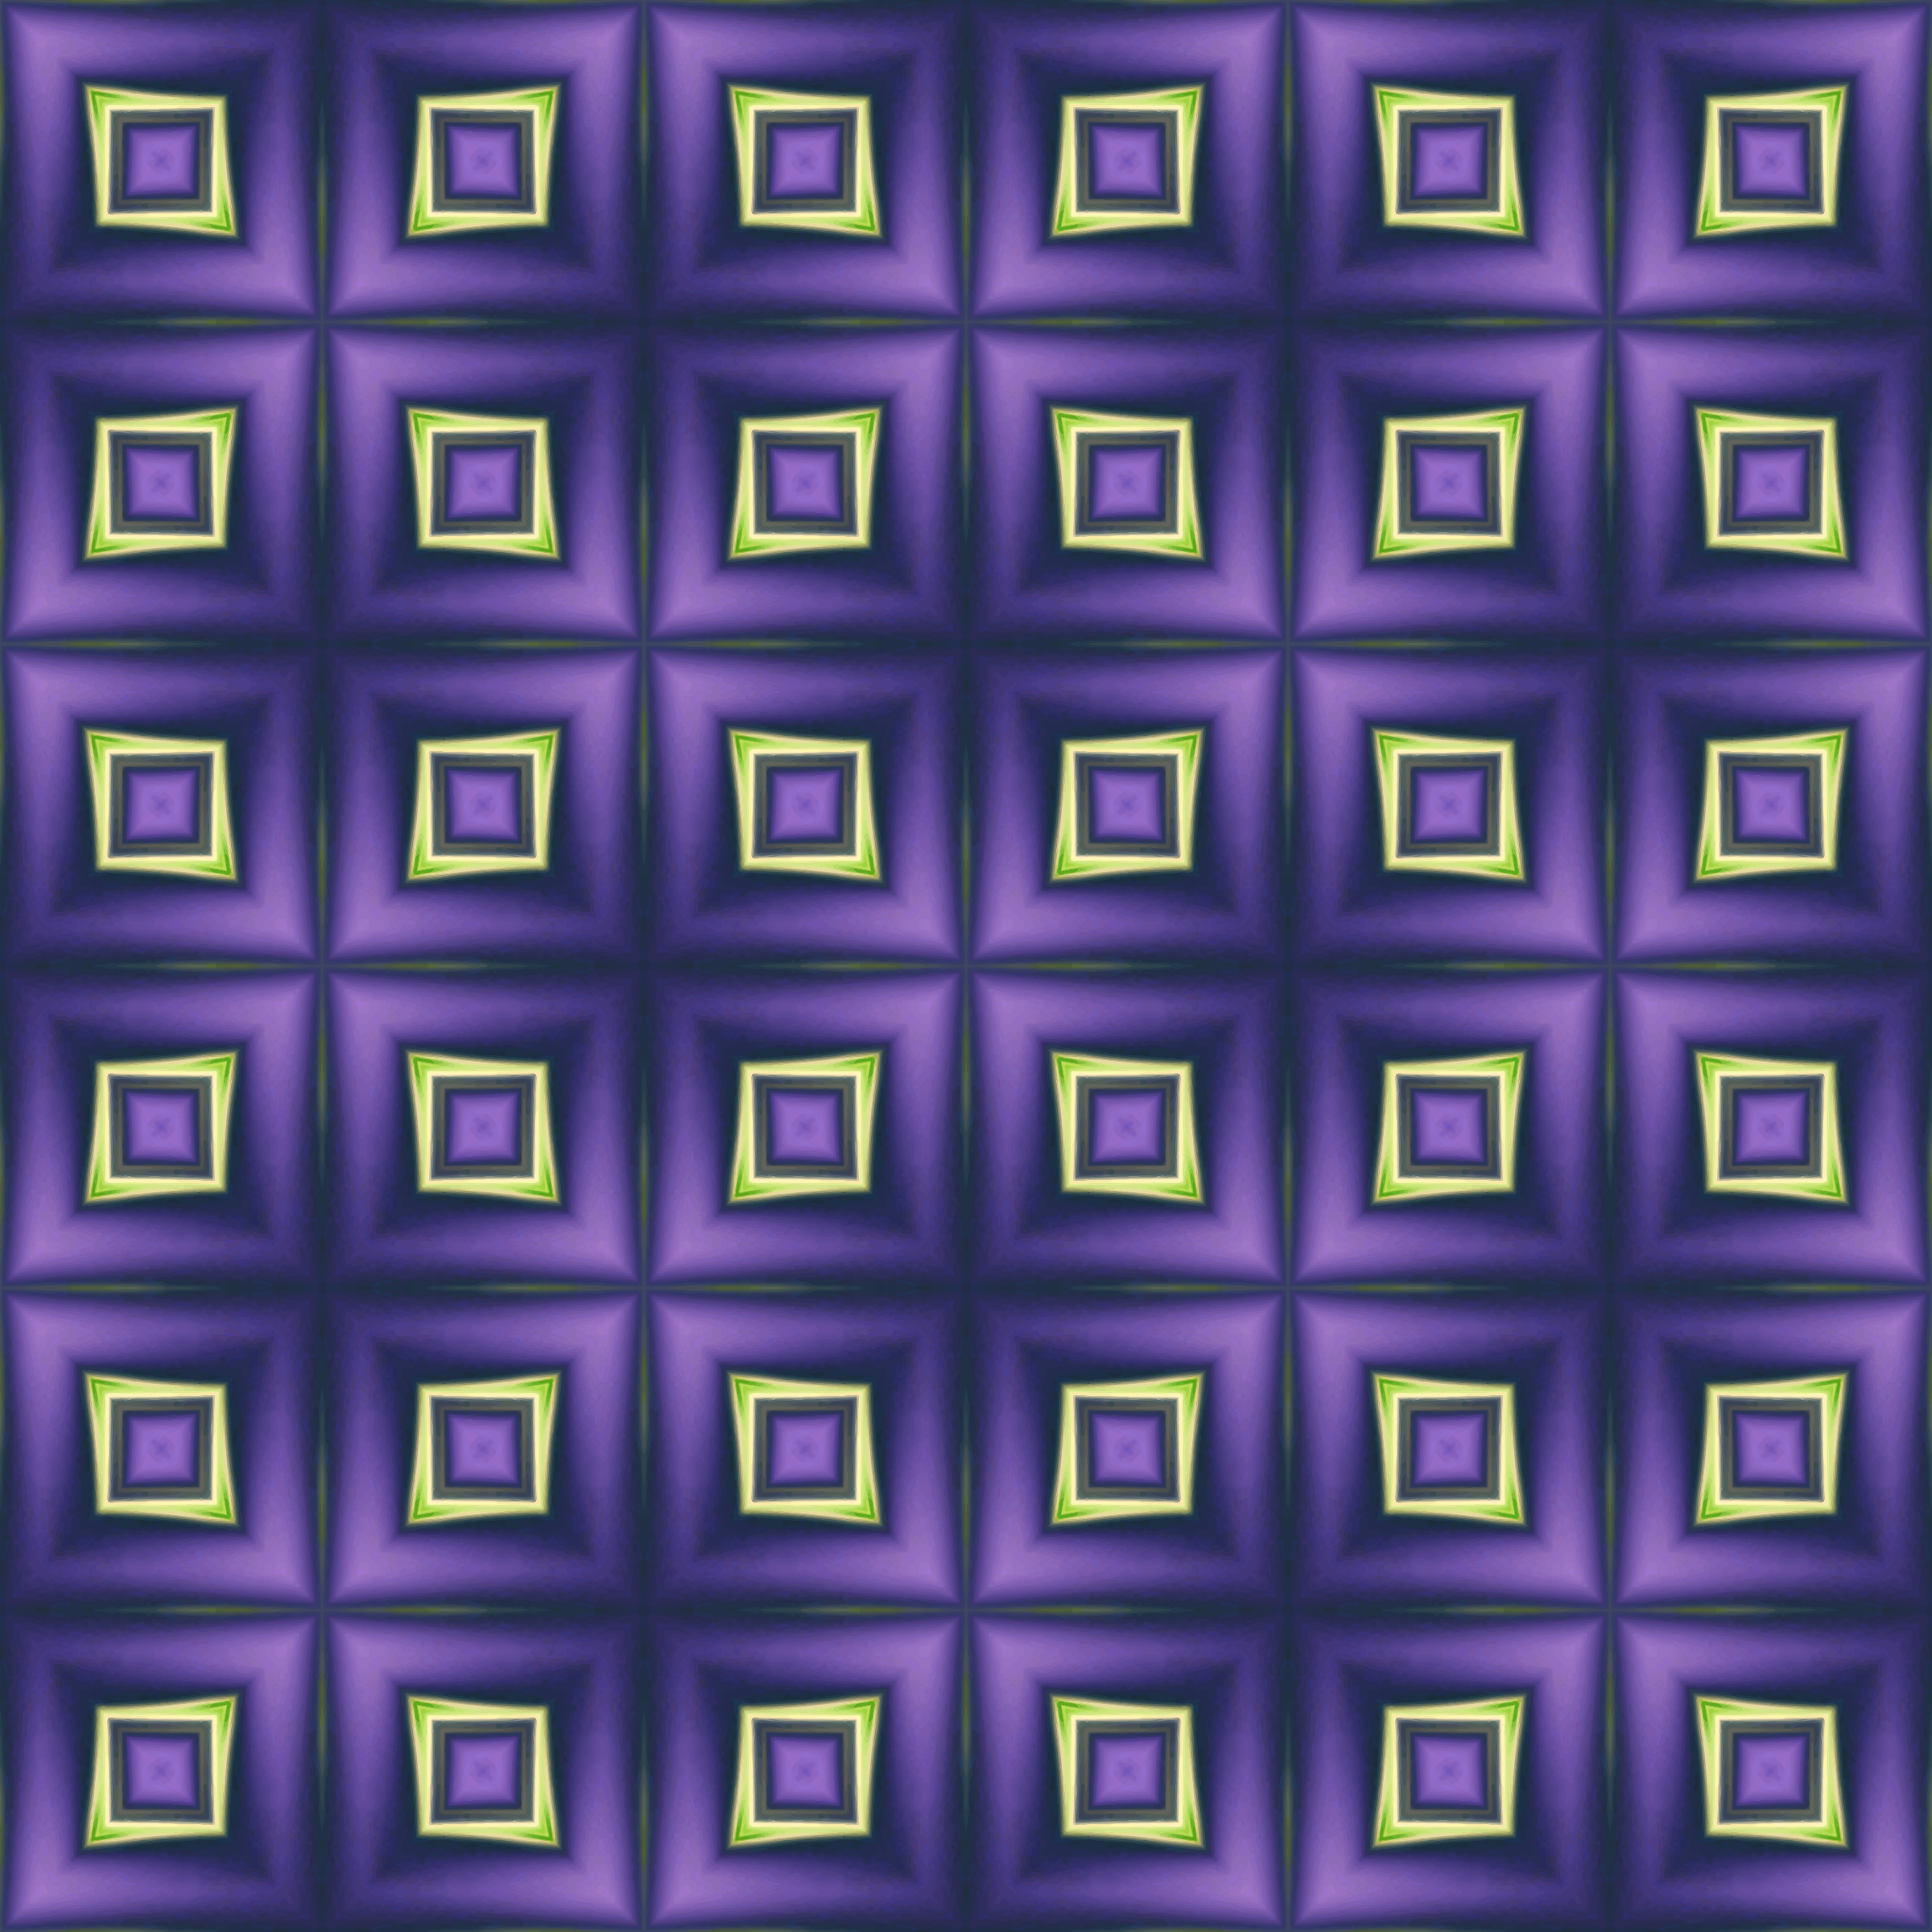 Background pattern 284 (colour 4) by Firkin